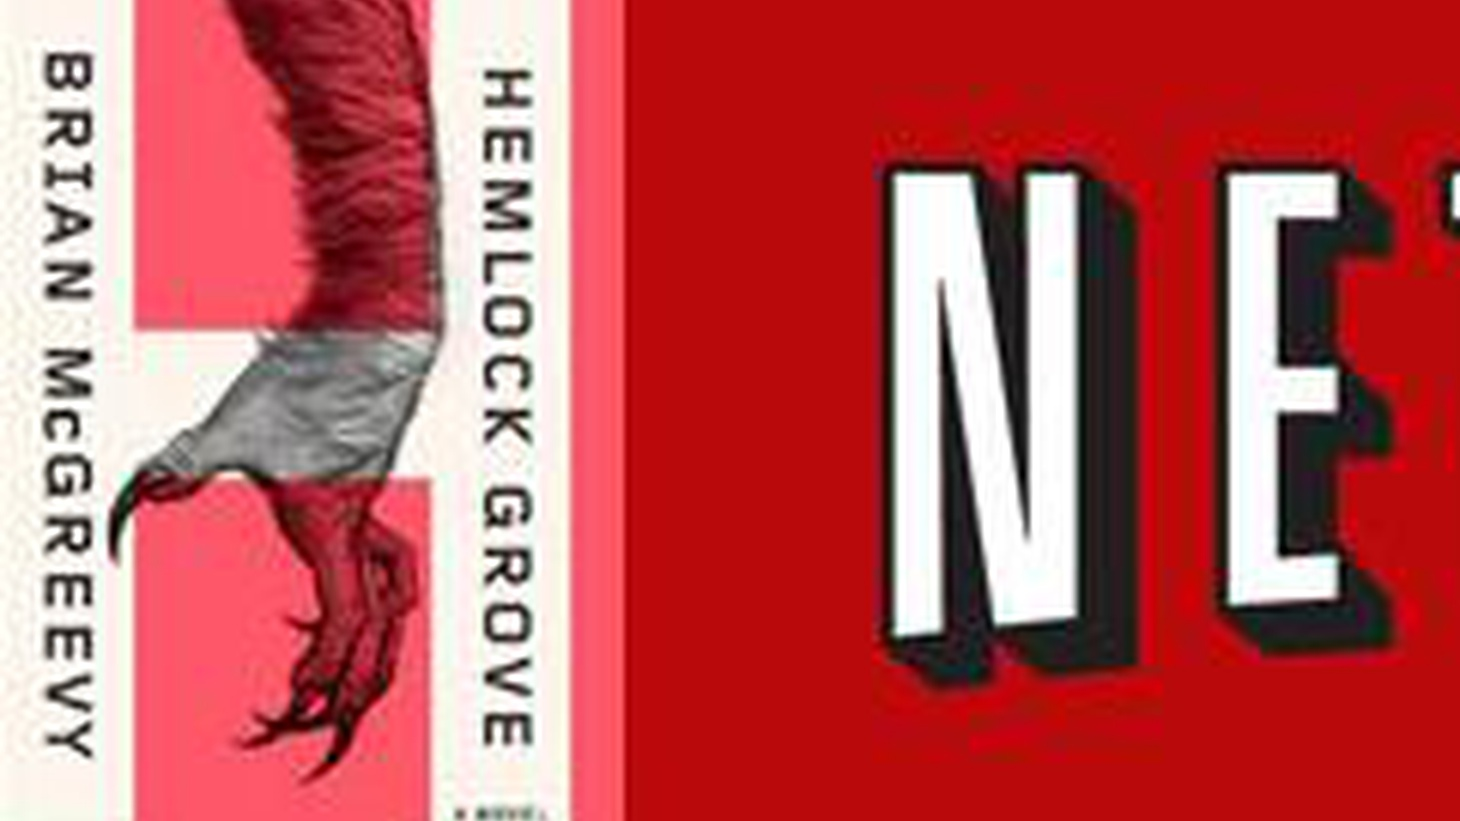 """Horror movie maker, Eli Roth and """"Hemlock Grove"""" author Brian McGreevy on turning this Gothic novel into a Netflix series."""